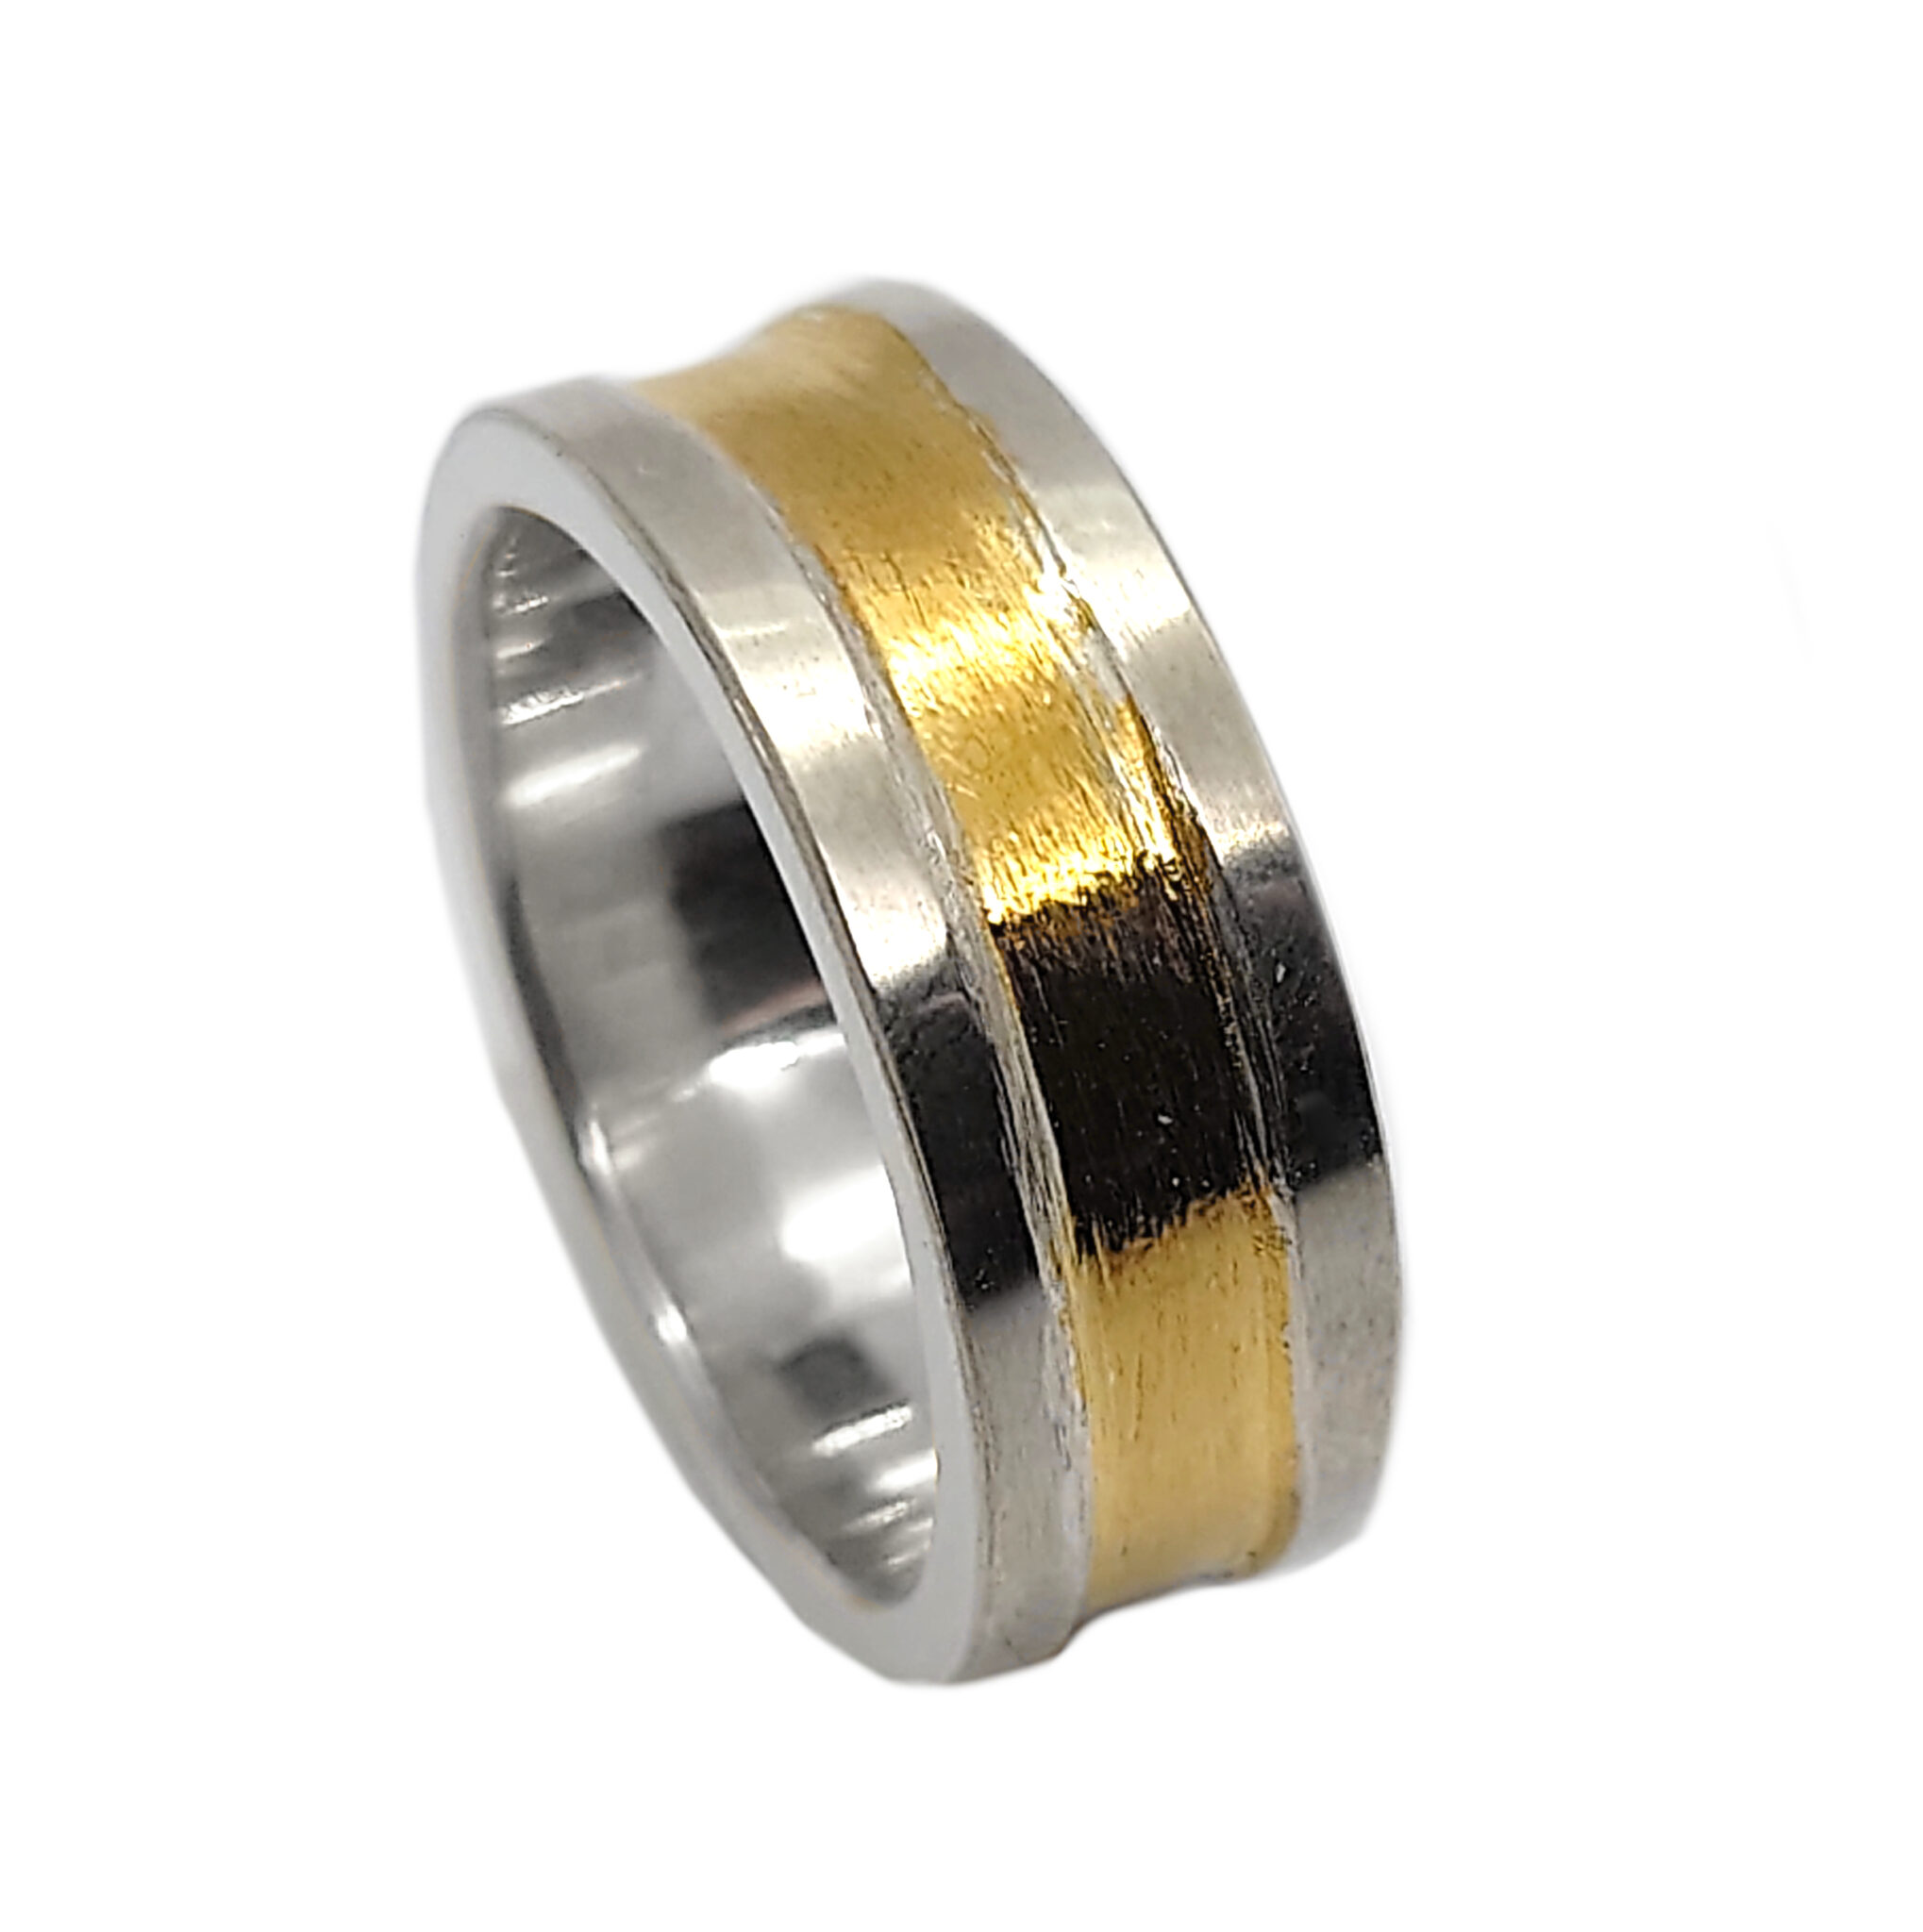 Spun Gold Ring. Sterling Silver With Keum-boo By R-Process